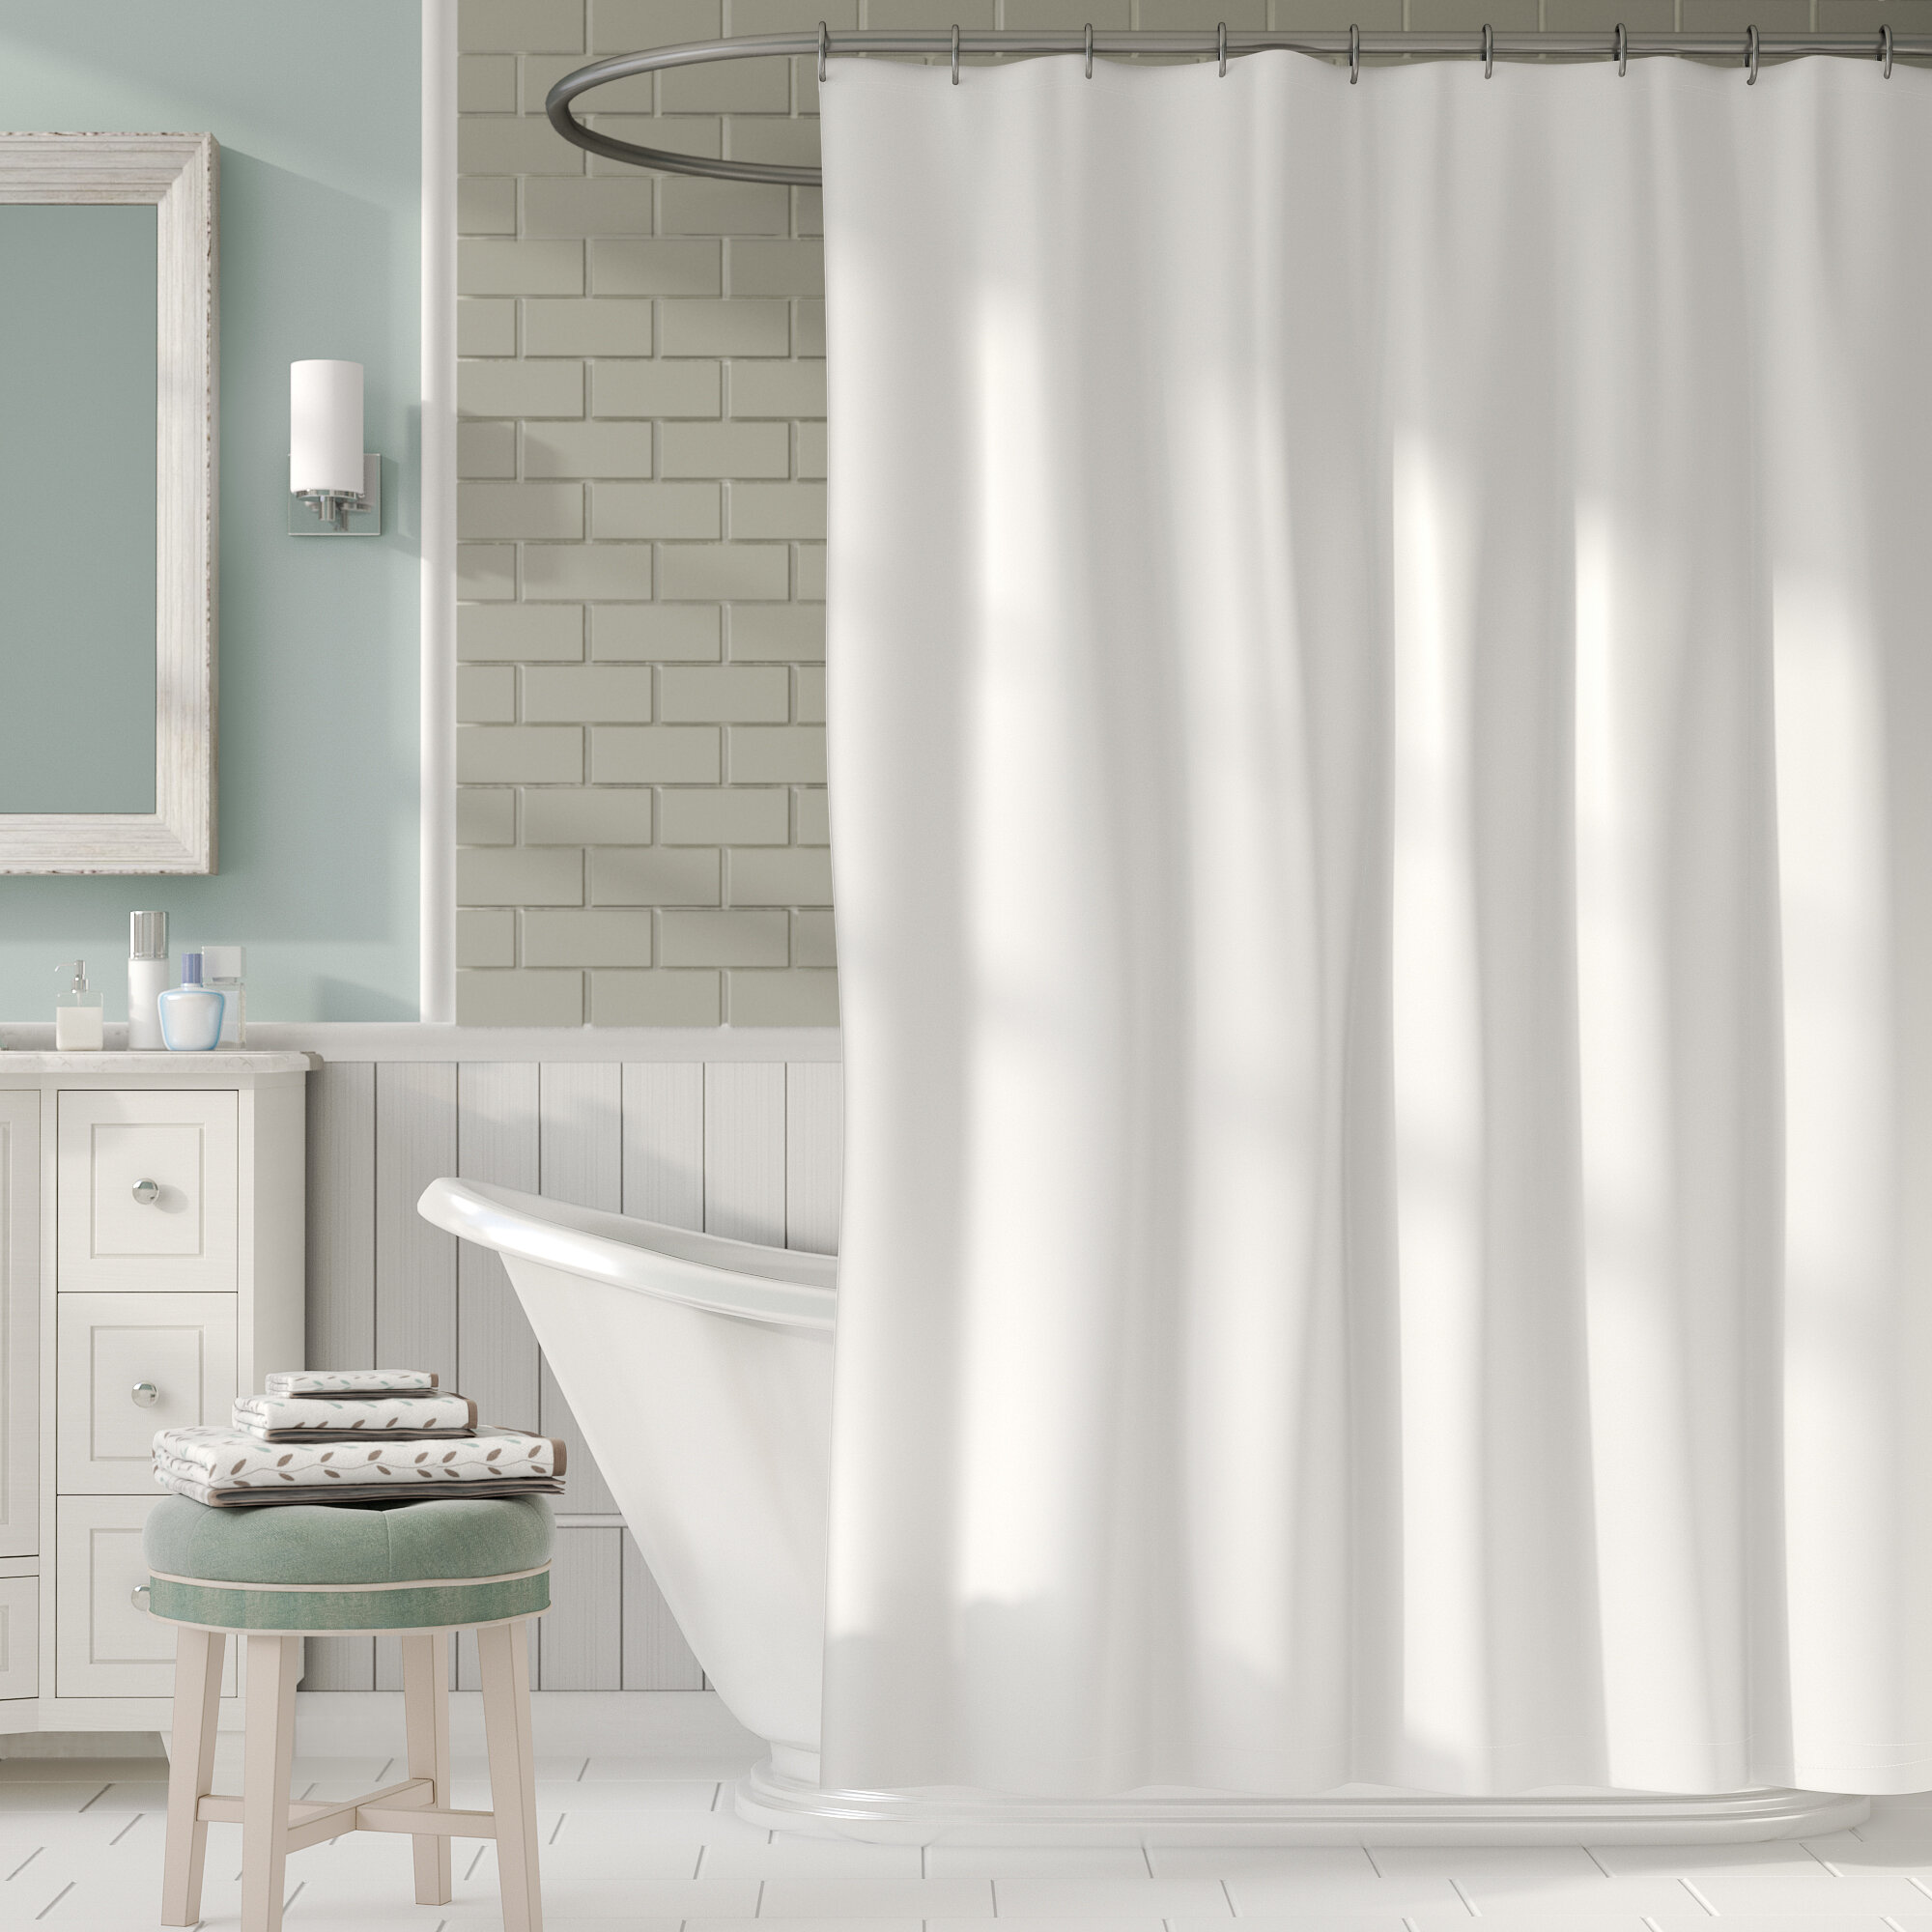 2 In 1 Single Shower Curtain